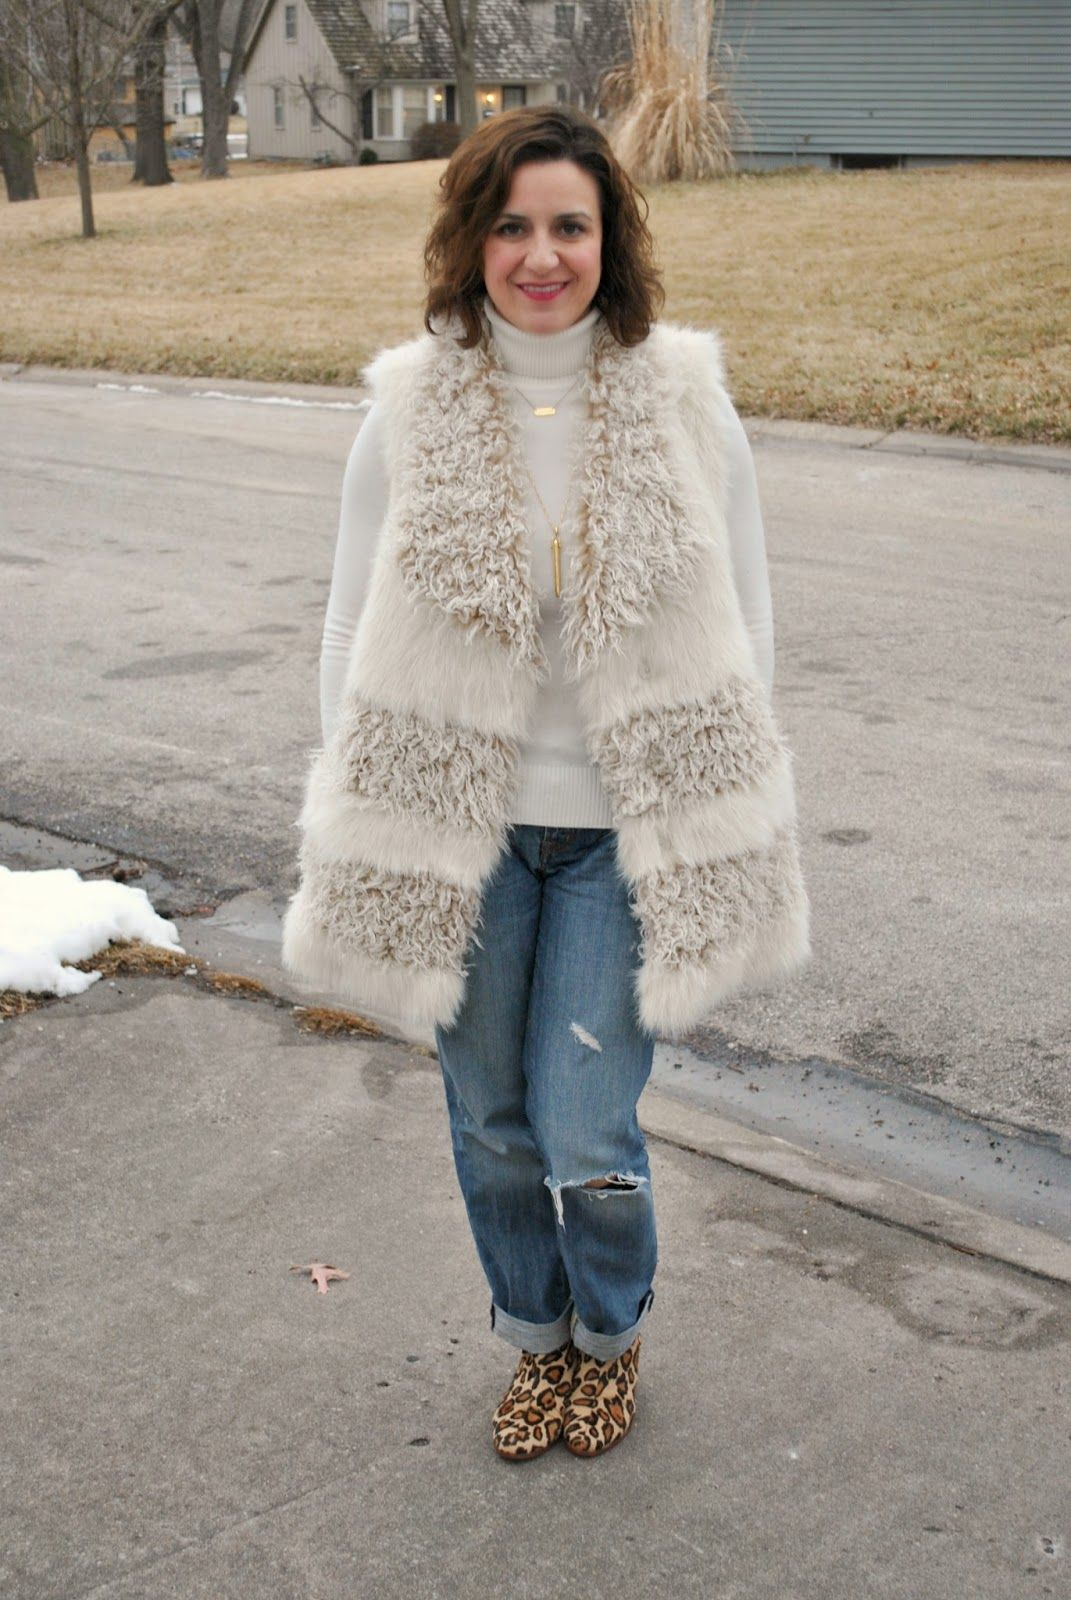 Faux fur vest, cream sweater, boyfriend jeans, and leopard print booties. A cozy chic look! http://akstylemyway.blogspot.com/